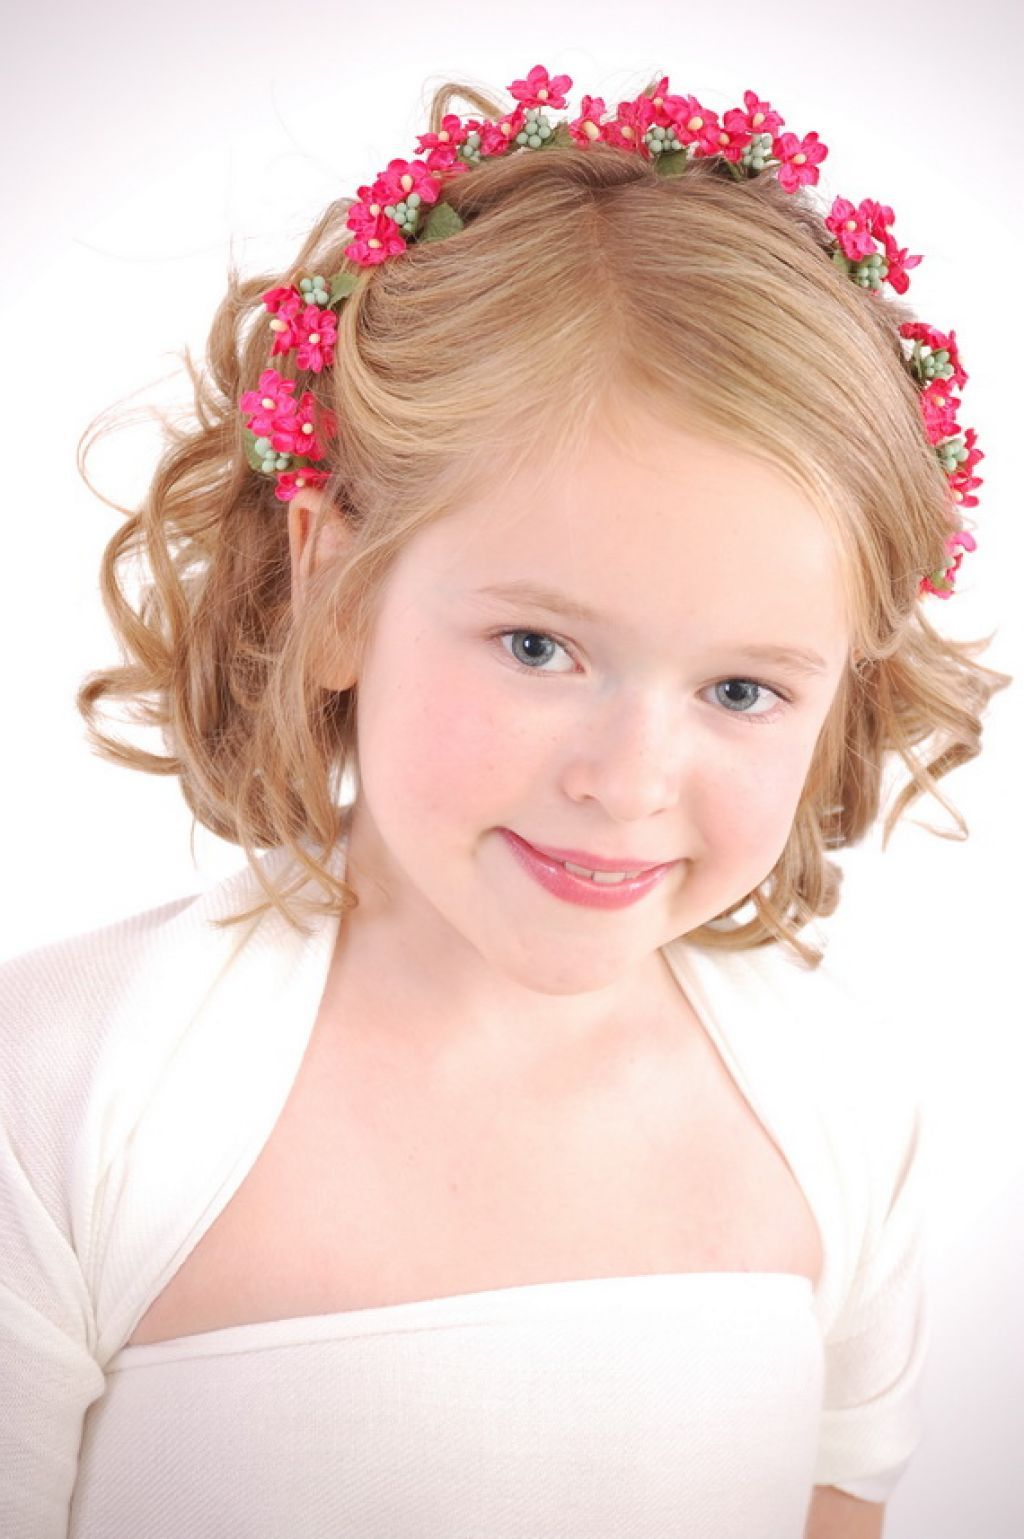 20 wedding hairstyles for kids ideas | wedding | flower girl